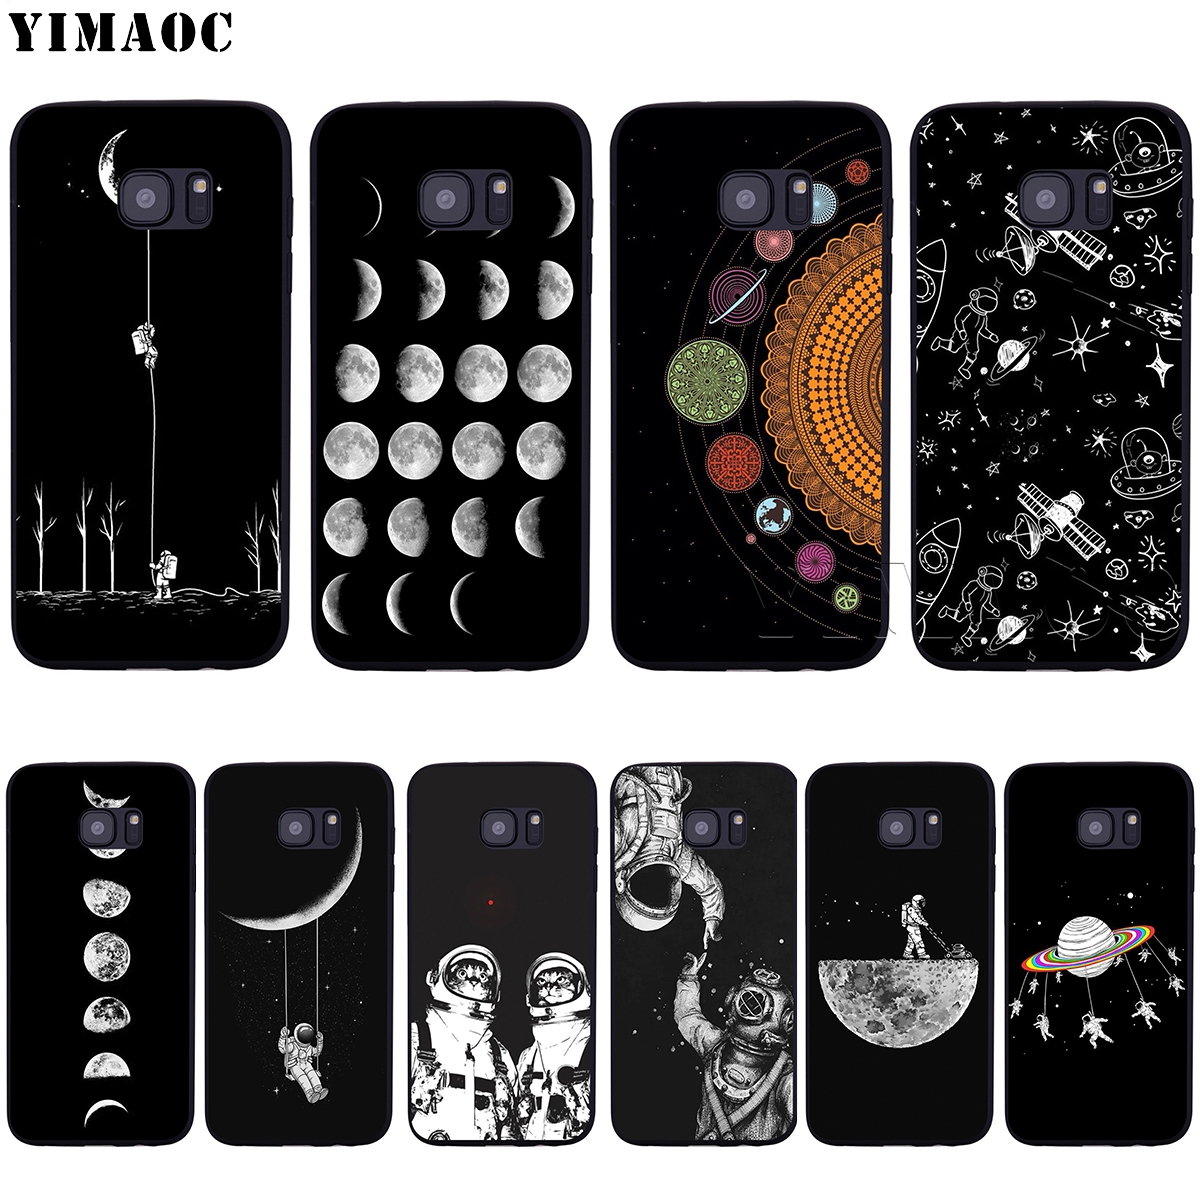 YIMAOC Space Moon Astronaut Soft Silicone Case for Samsung Galaxy S6 S7 S10e Edge S8 S9 Plus A3 A5 A6 A7 A8 A9 J6 Note 8 9 2018